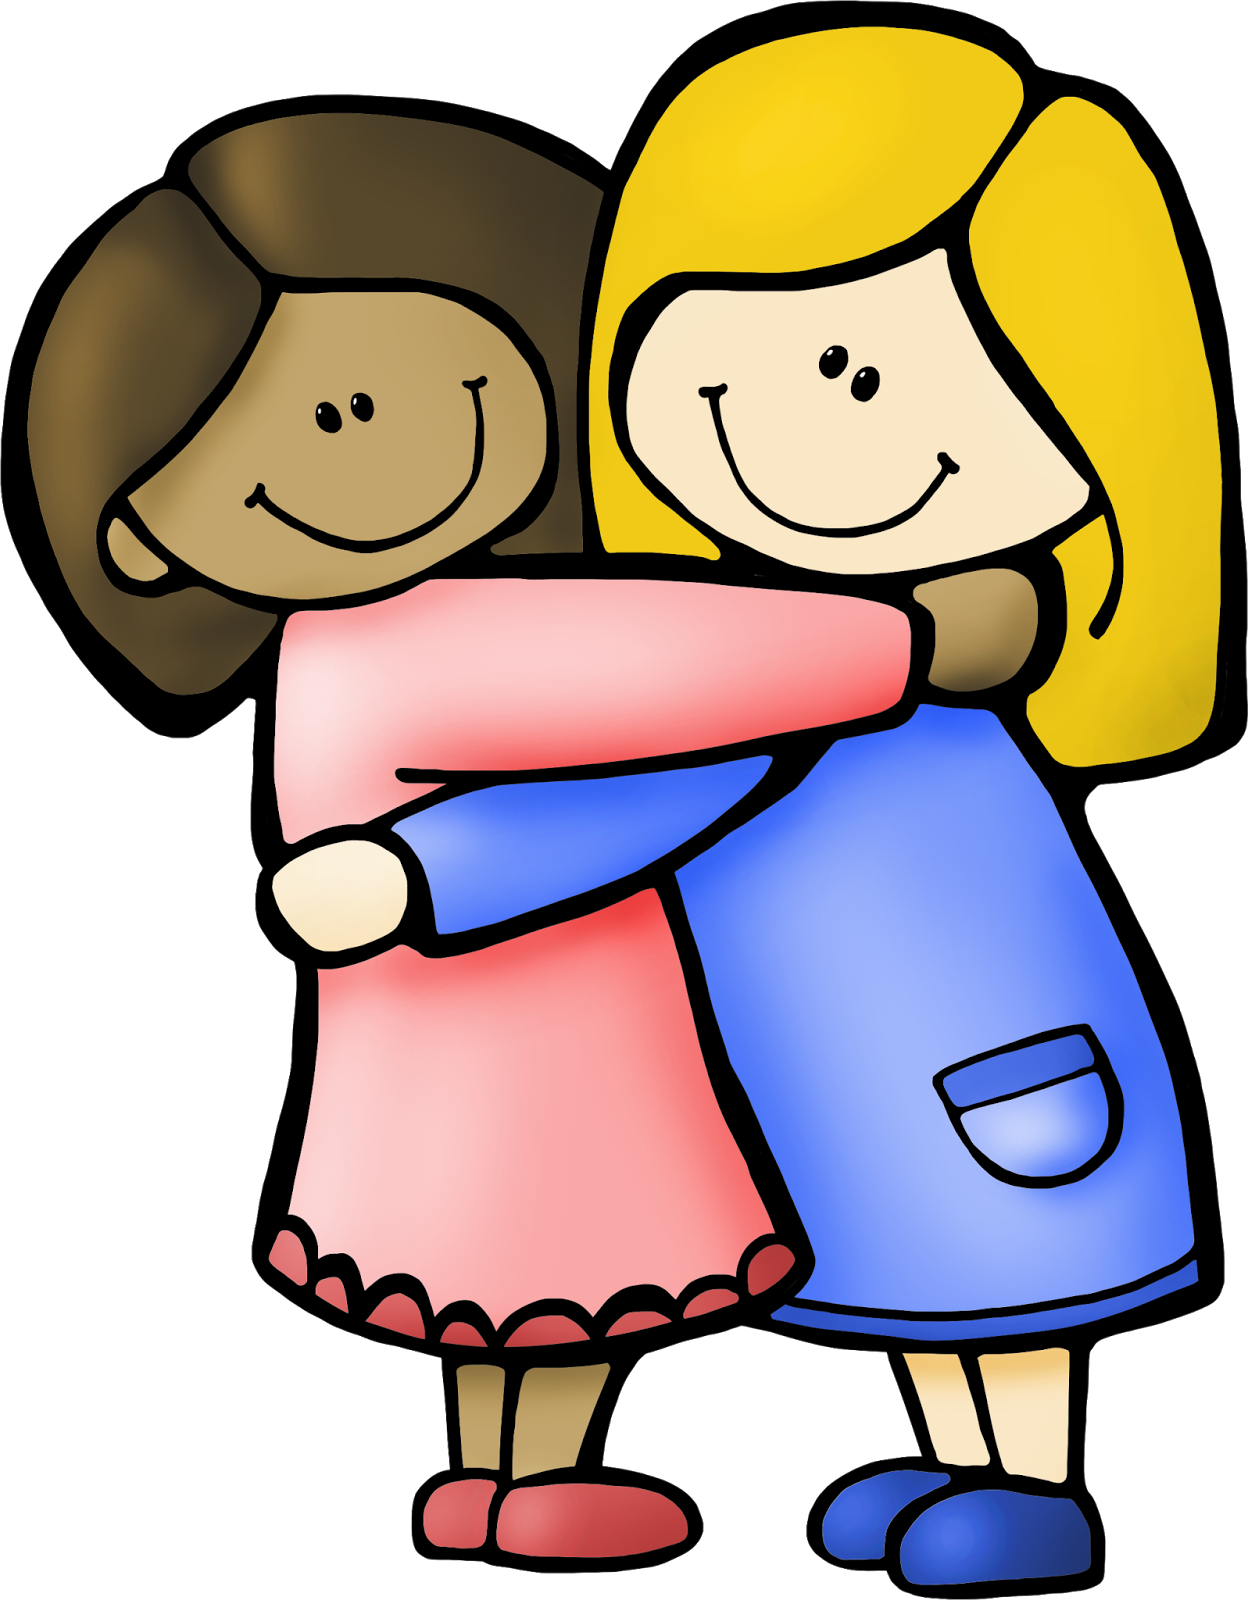 Hugs clipart free image royalty free download hug clipart - Honey & Denim image royalty free download